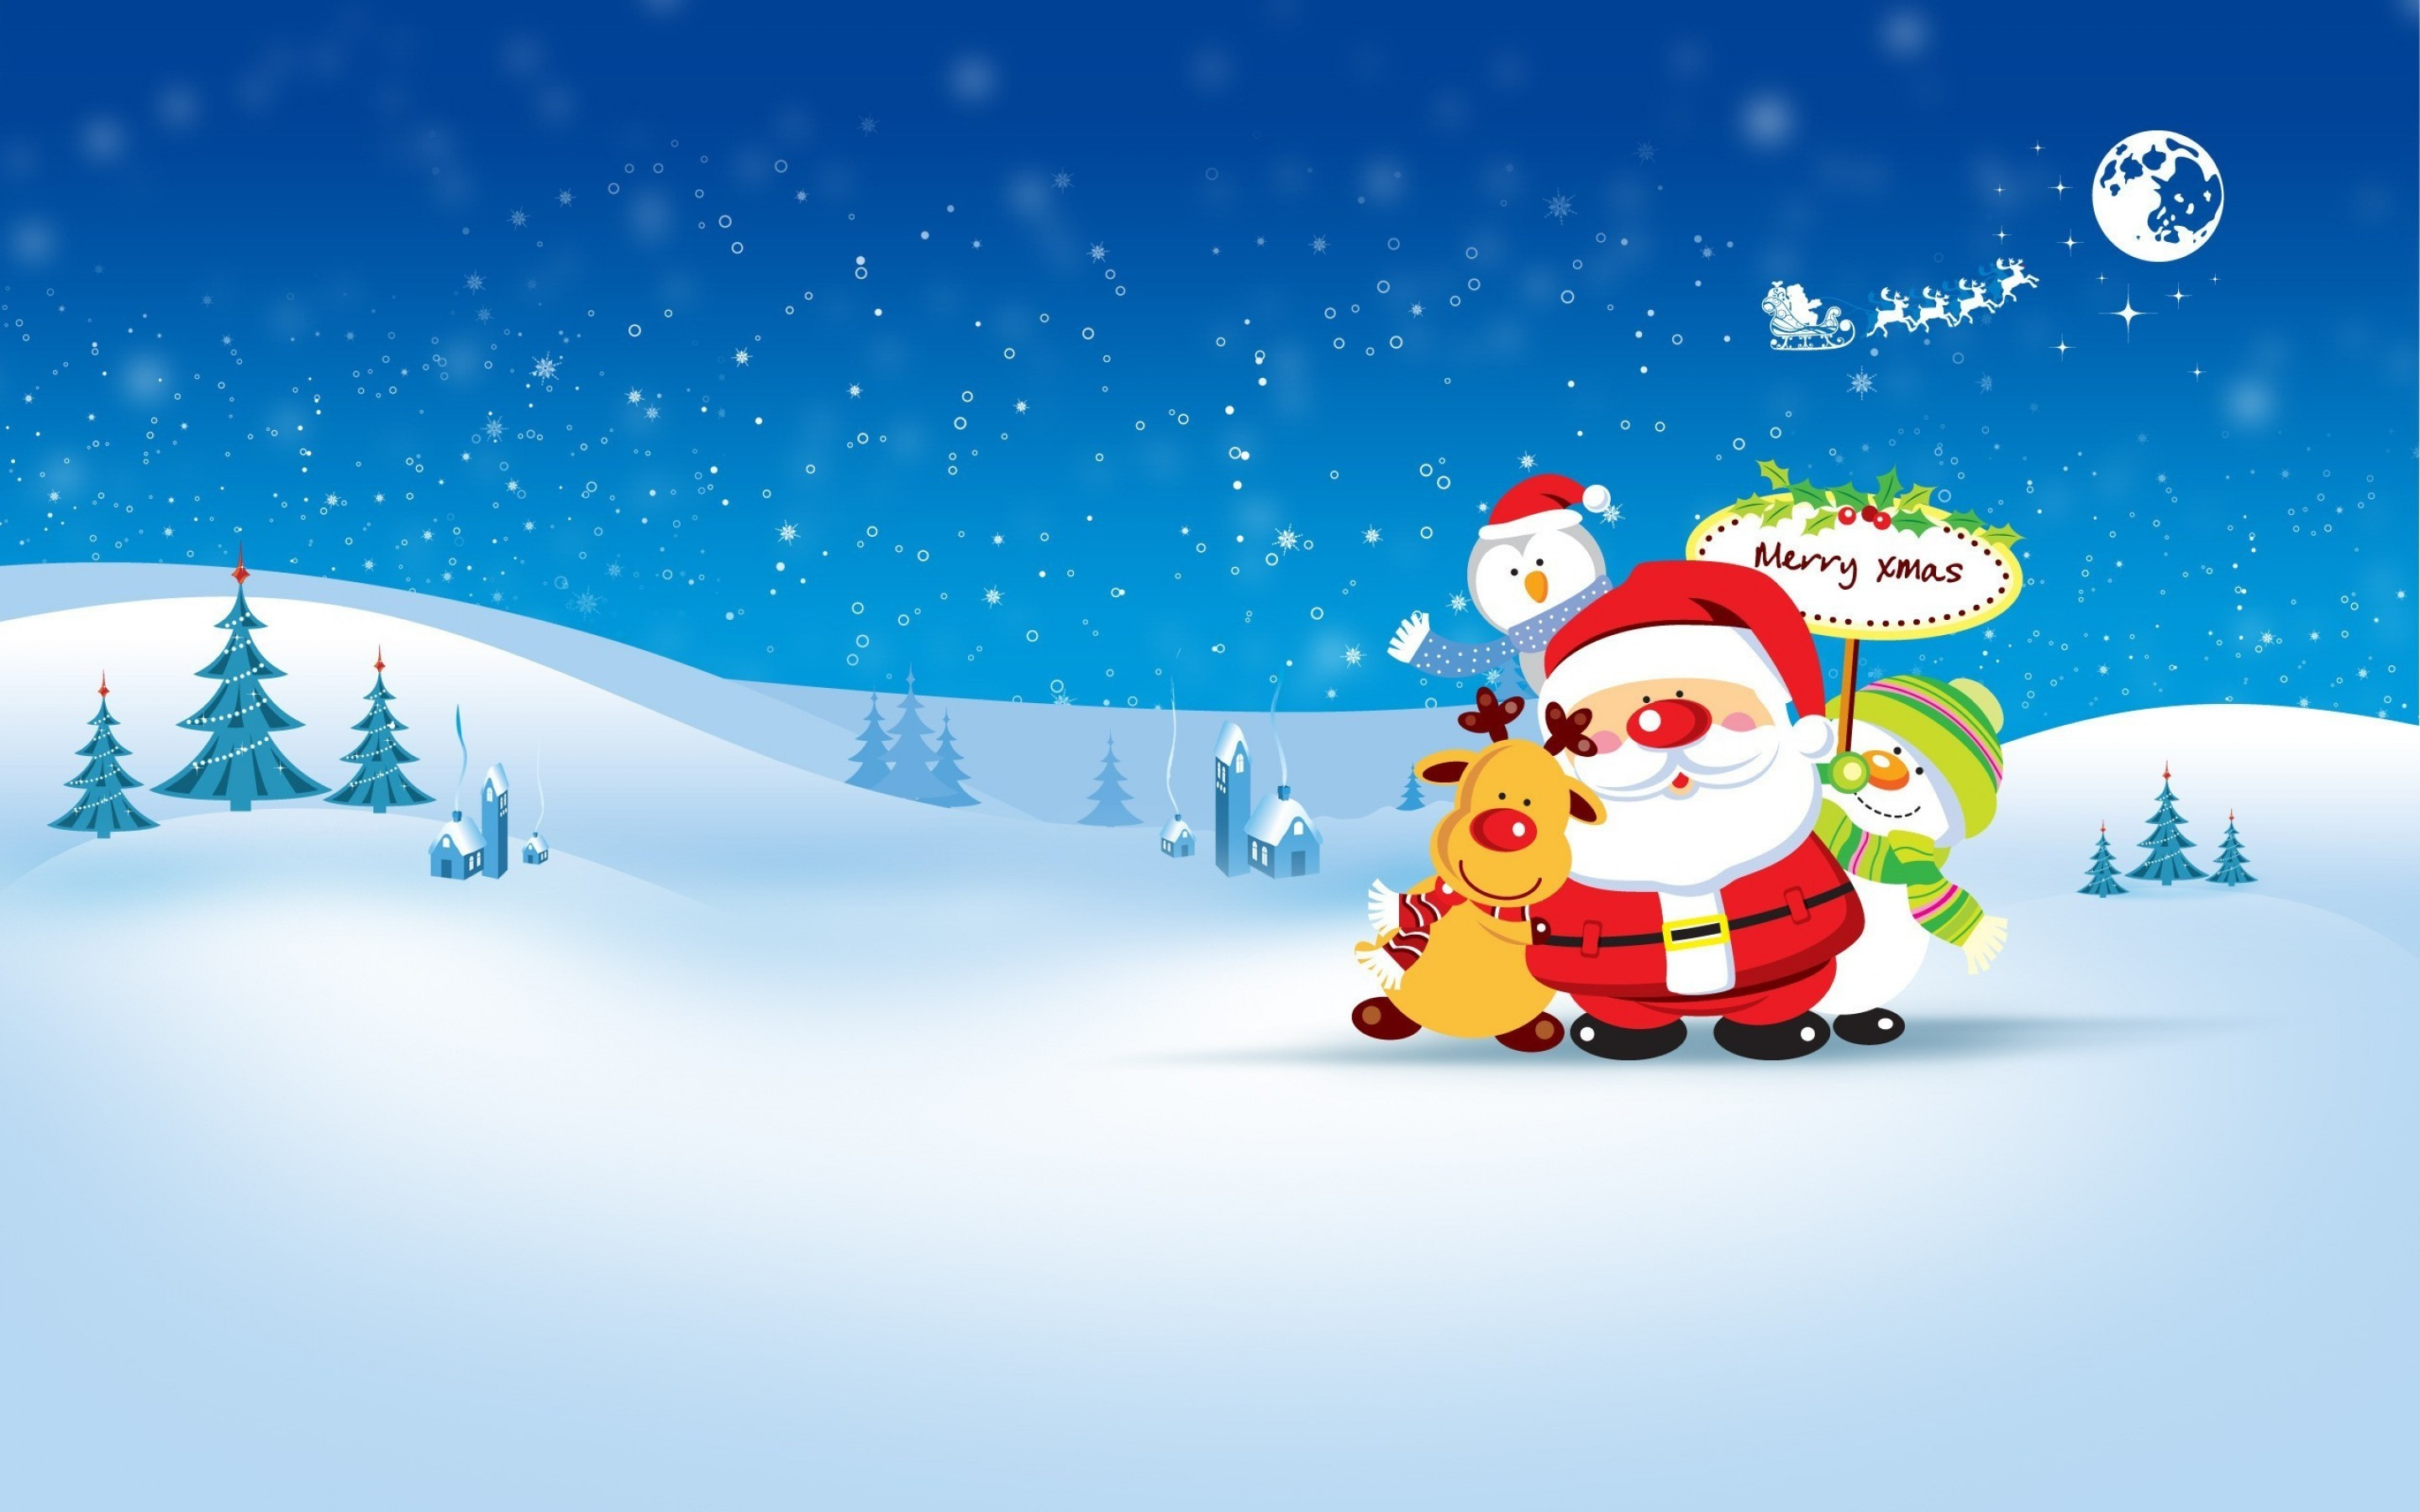 Hd Christmas Wallpaper.25 Super Hd Christmas Wallpapers